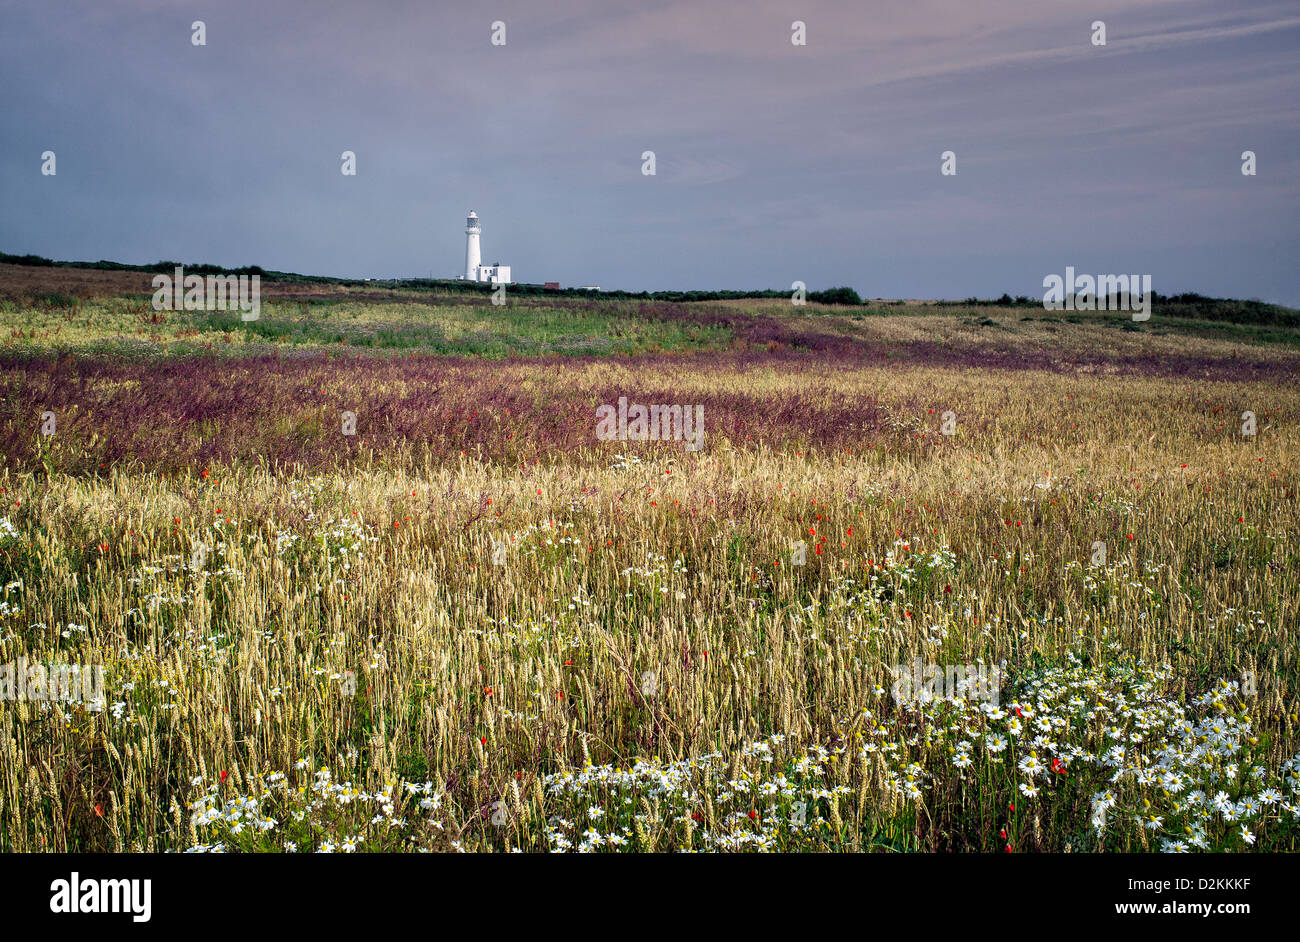 Flamborough Head lighthouse, a wheat field, and wild flowers on a bright day in summer, Yorkshire, UK. - Stock Image